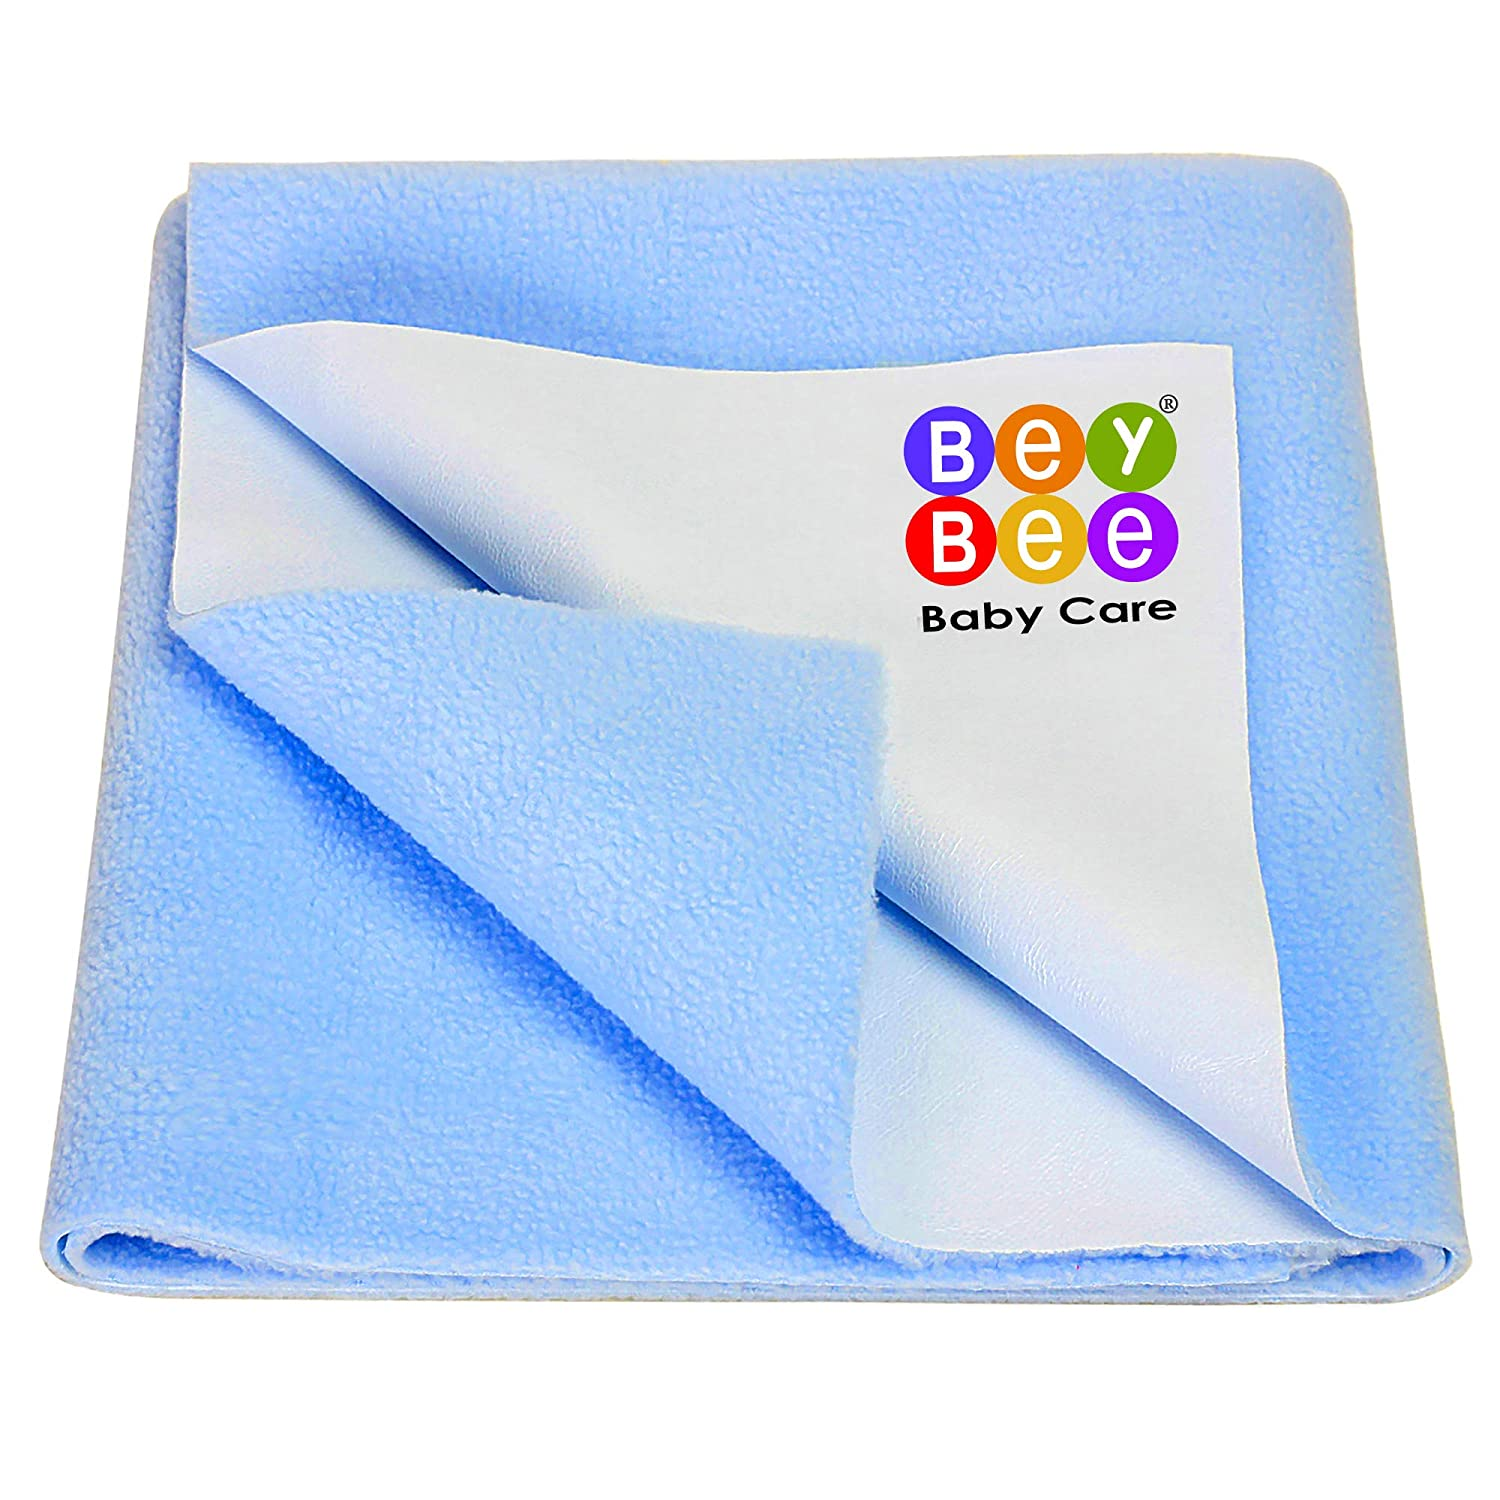 Blentude Waterproof Sheet Incontinence Bed Protector Washable Crib Mattress Sheets For Baby Toddlers Children Adults Pets Fits 43.31x23.62 Inch Crib Mattress